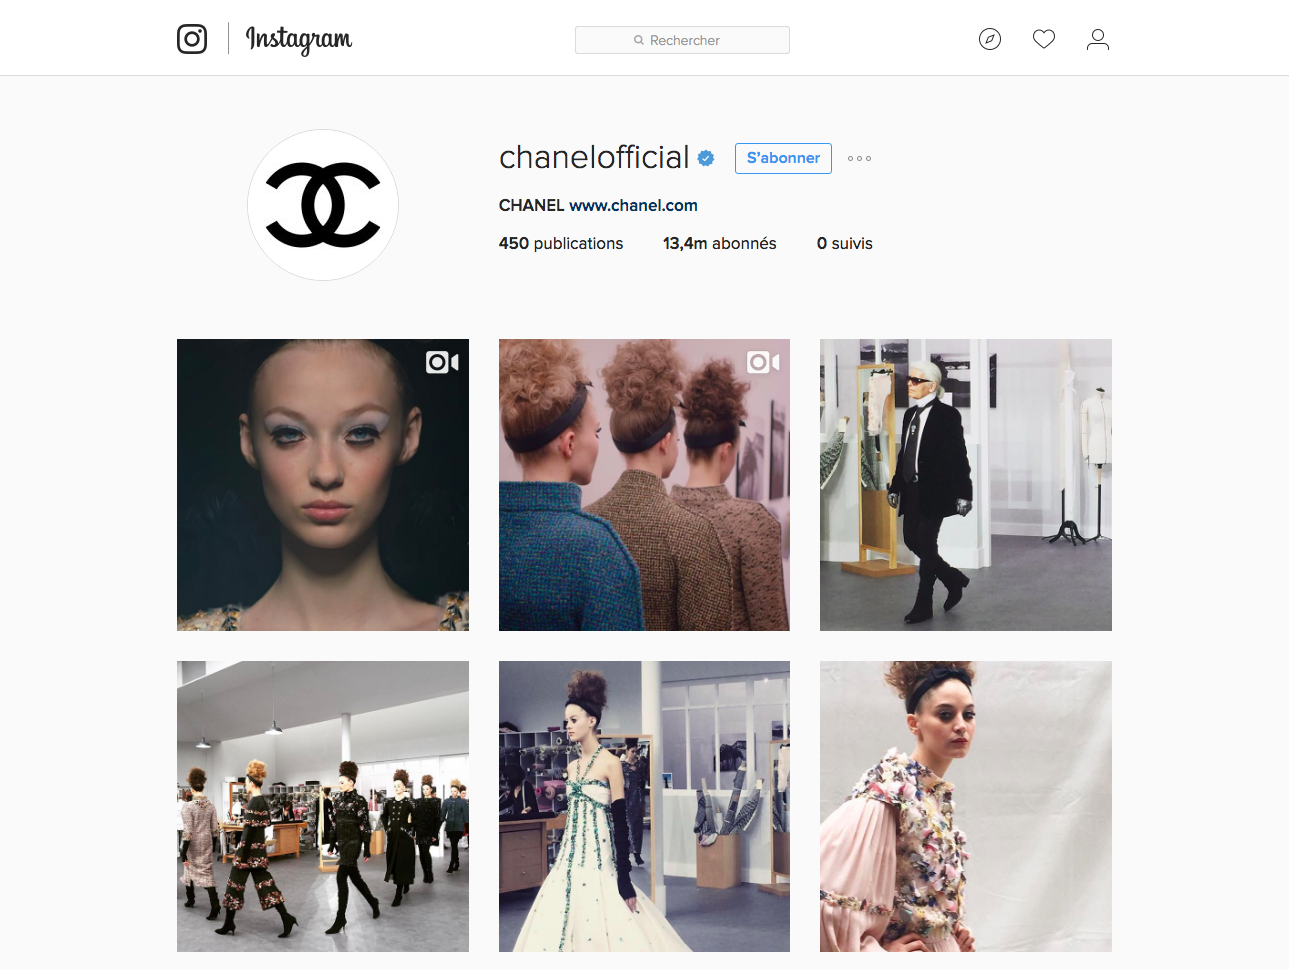 Chanel-Instagram-social-media-strategy